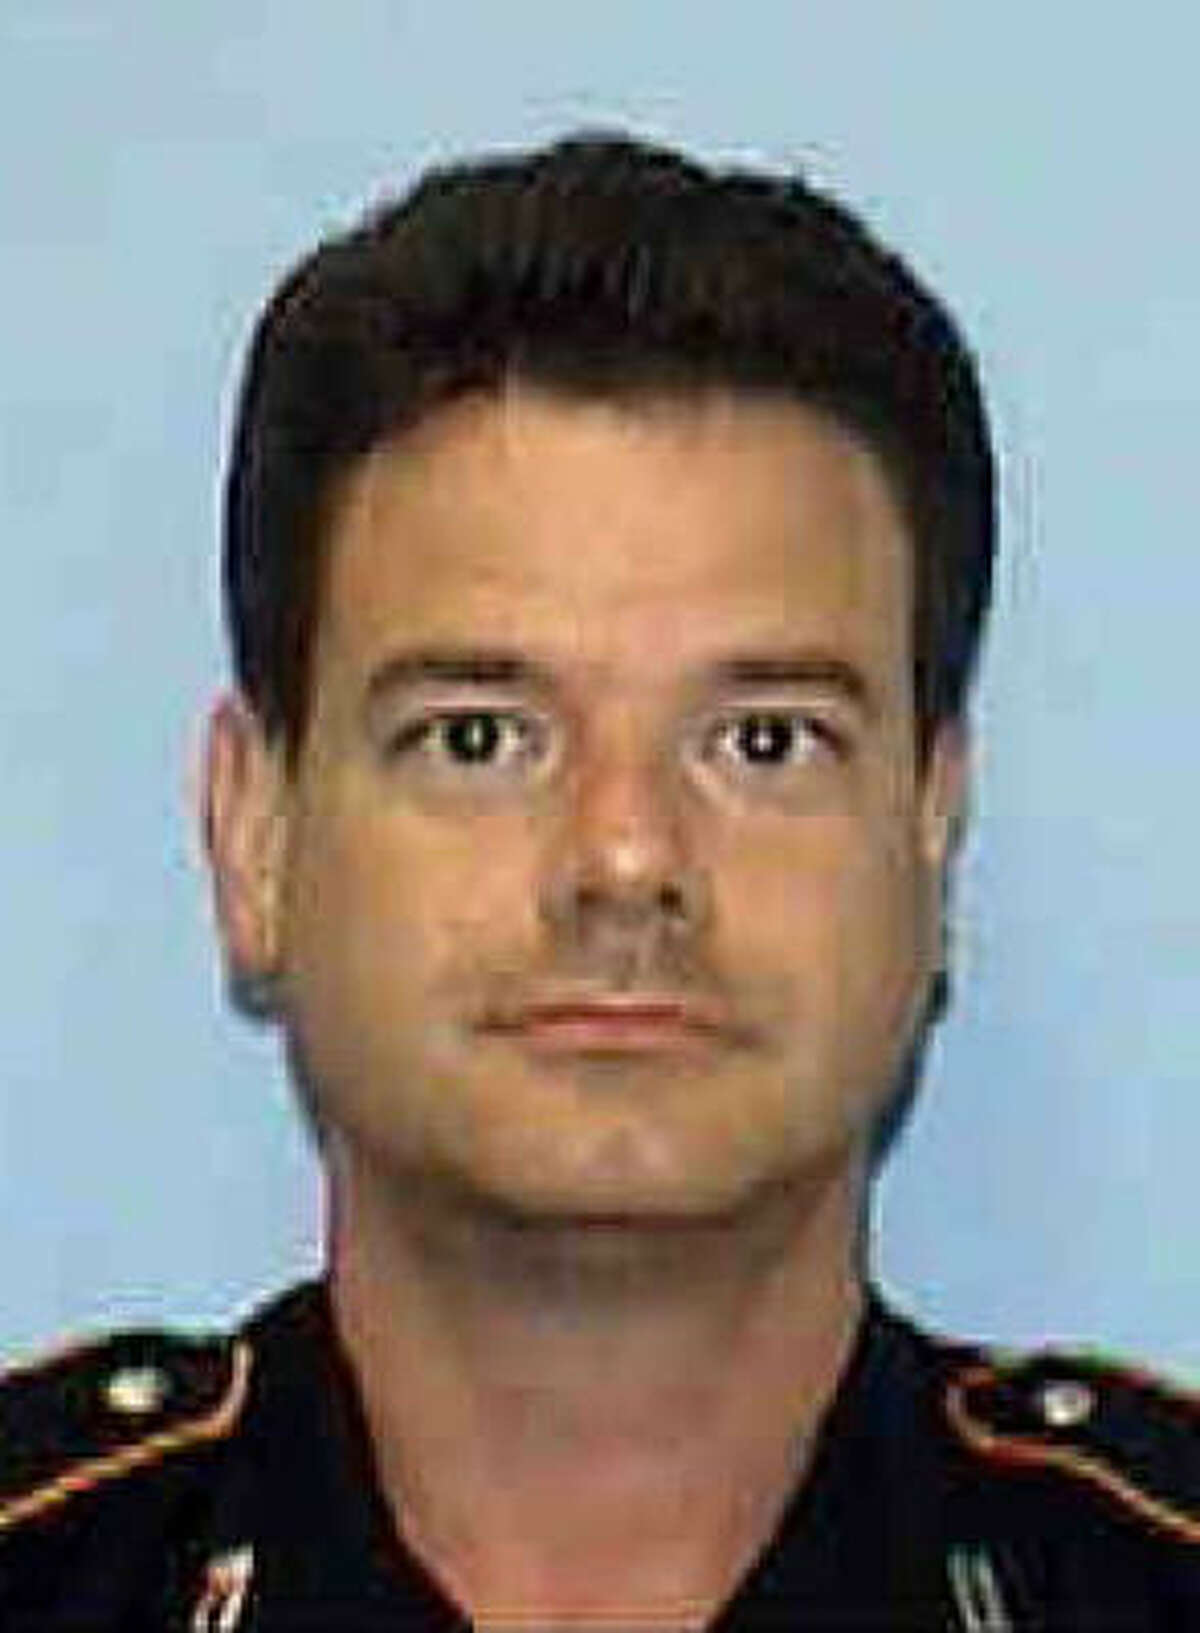 Harris County Deputy Sheriff Craig Miller died Feb. 21 when his SUV crashed into a truck driven by Jose Jesus Vieyra.